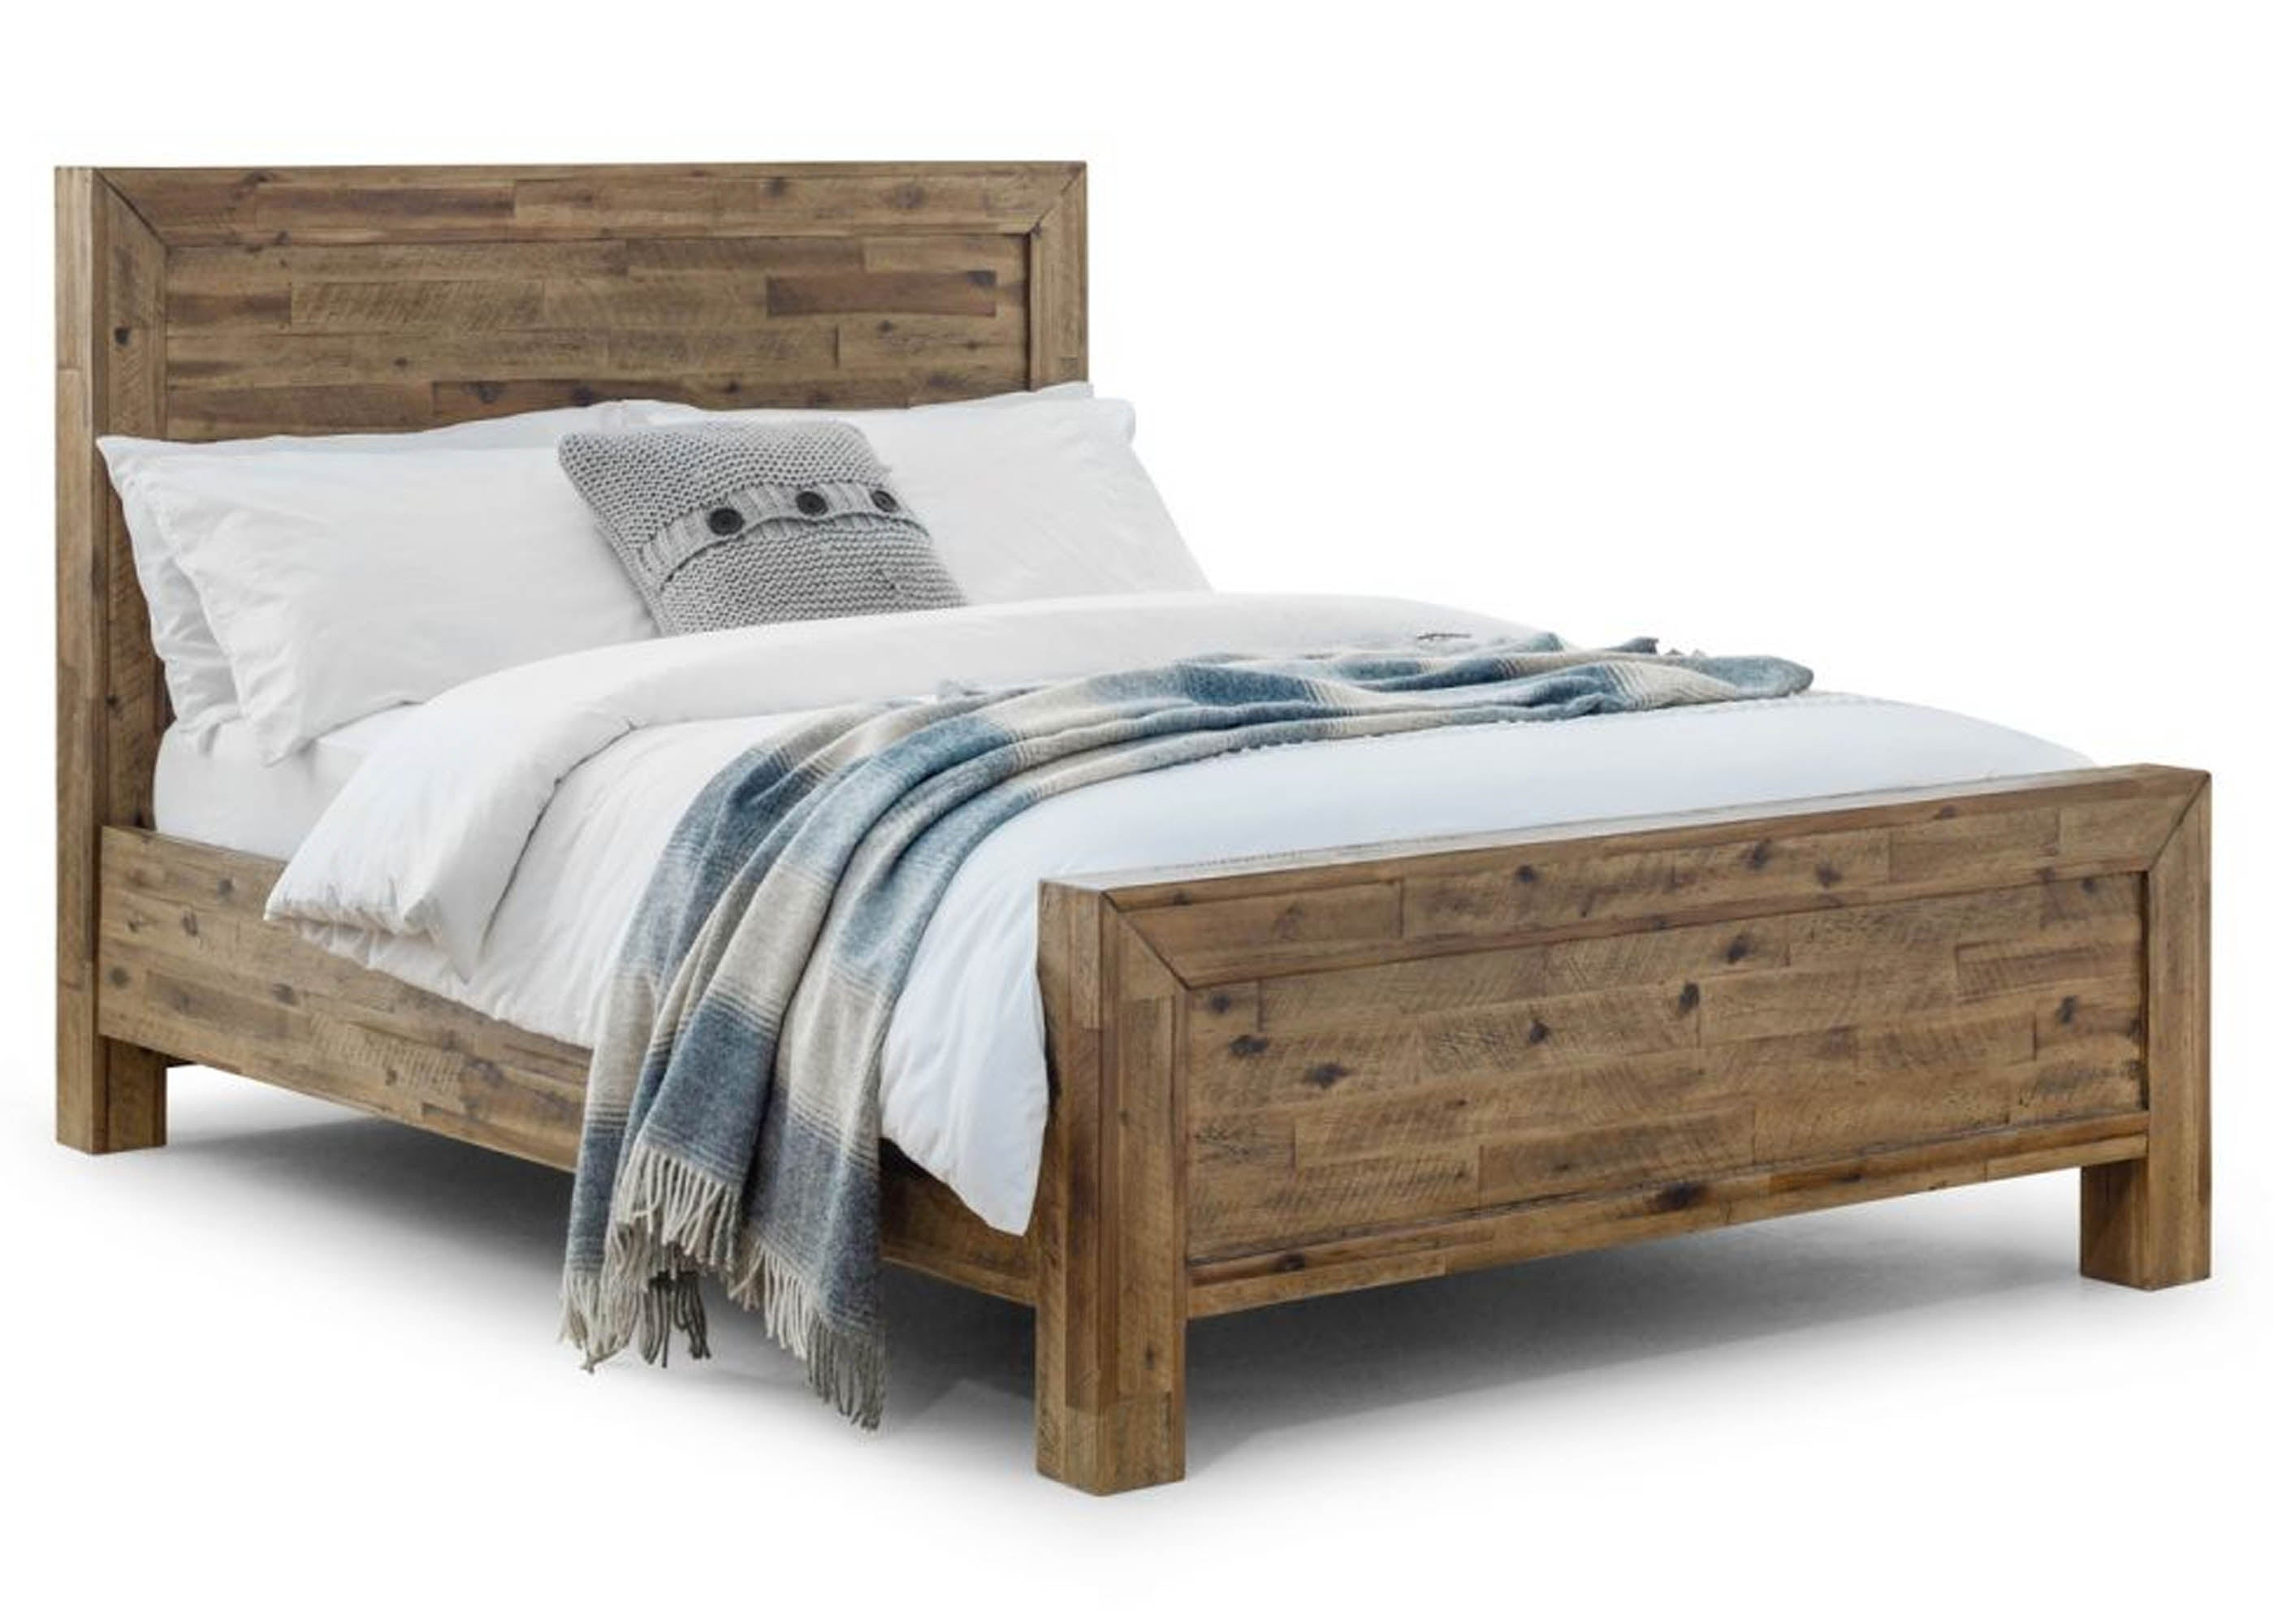 Rustic Oak Solid Bed Made From Reclaimed Wood Reinforced Beds